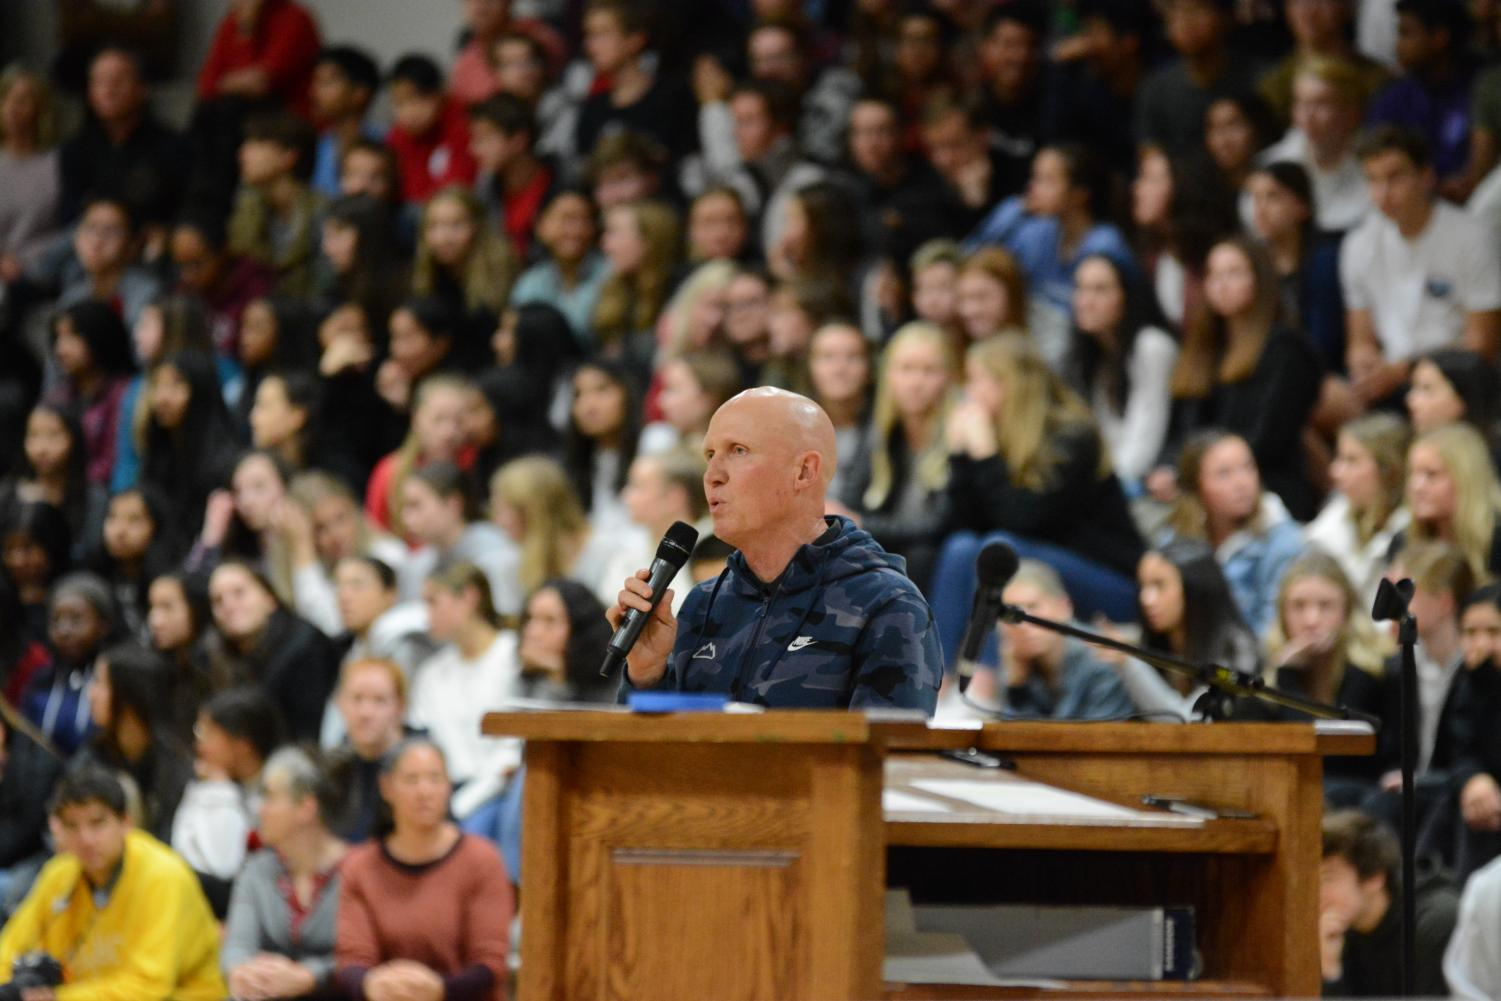 Coach Rothenberger speaks to the community at the Fall Sports assembly 2019.